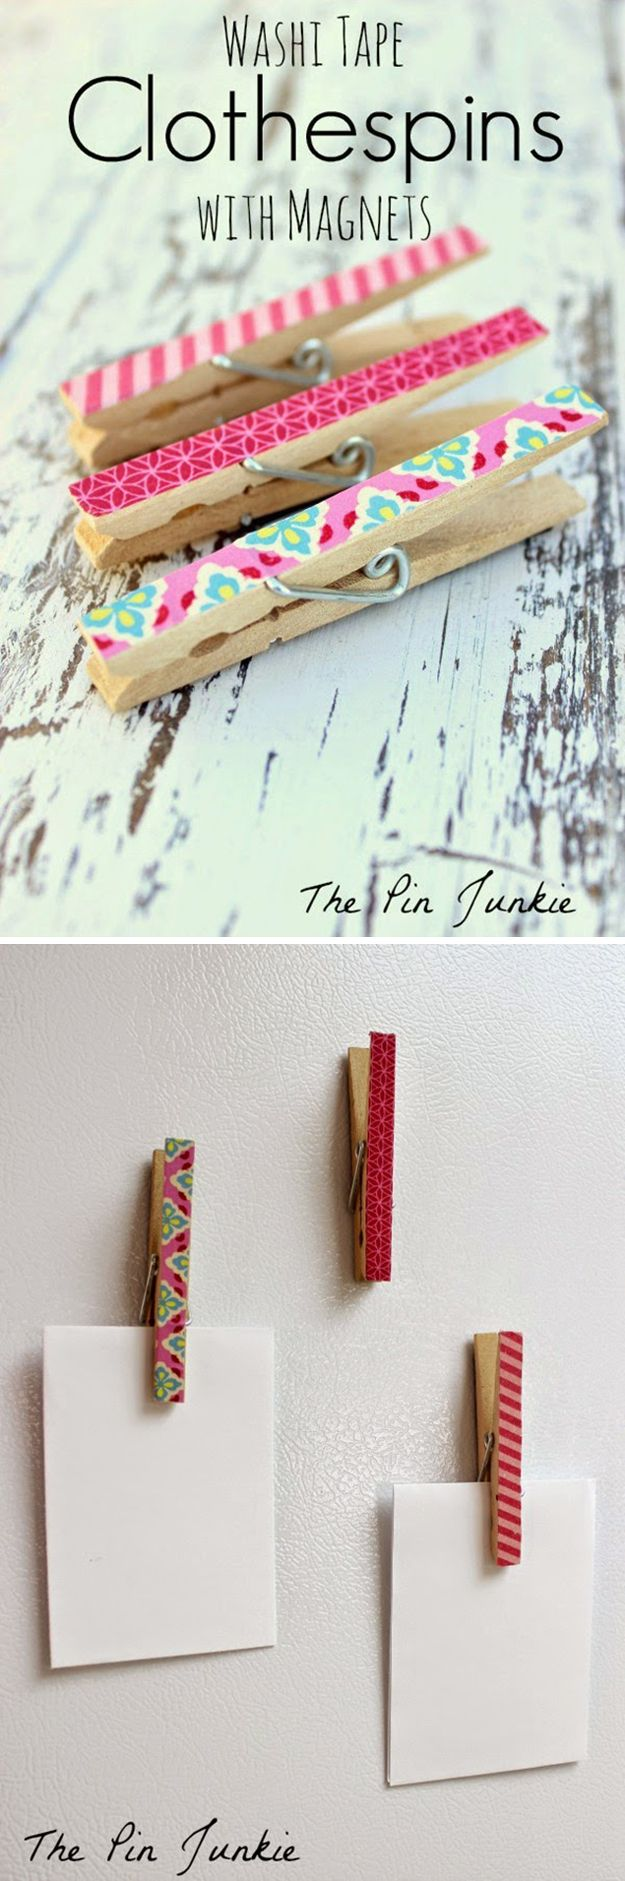 Creative Washi Tape Design | DIY Clothespin Magnets by DIY Ready at http://diyready.com/100-creative-ways-to-use-washi-tape/